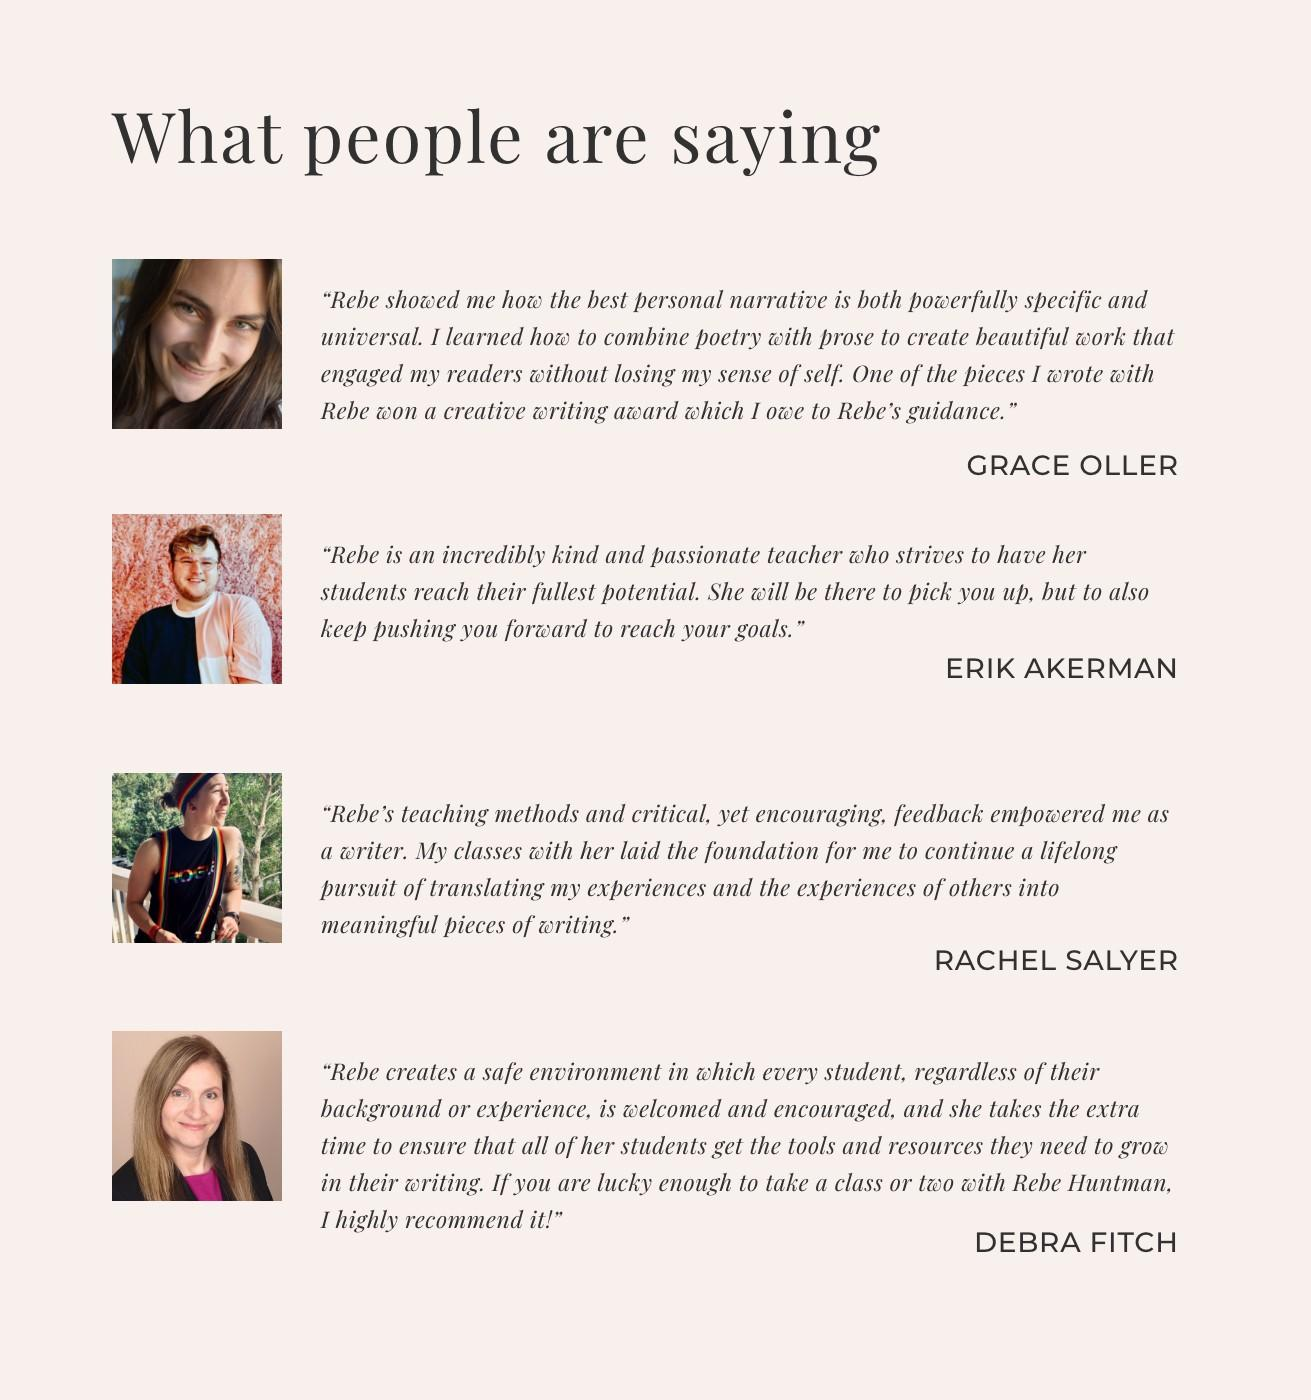 Testimonials about author Rebe Huntman's writing courses from Grace Oller, Erik Akerman, Rachel Salyer, and Debra Fitch